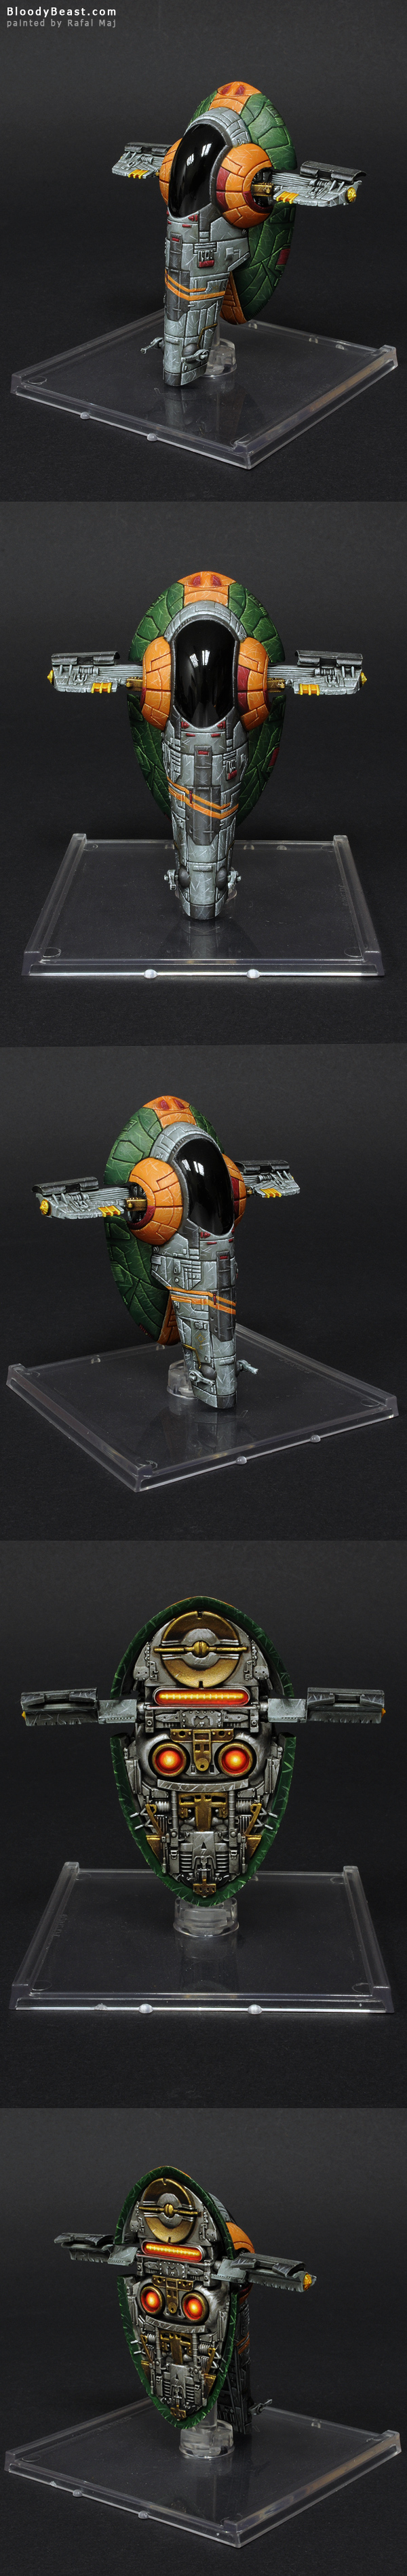 X-Wing Slave I painted by Rafal Maj (BloodyBeast.com)